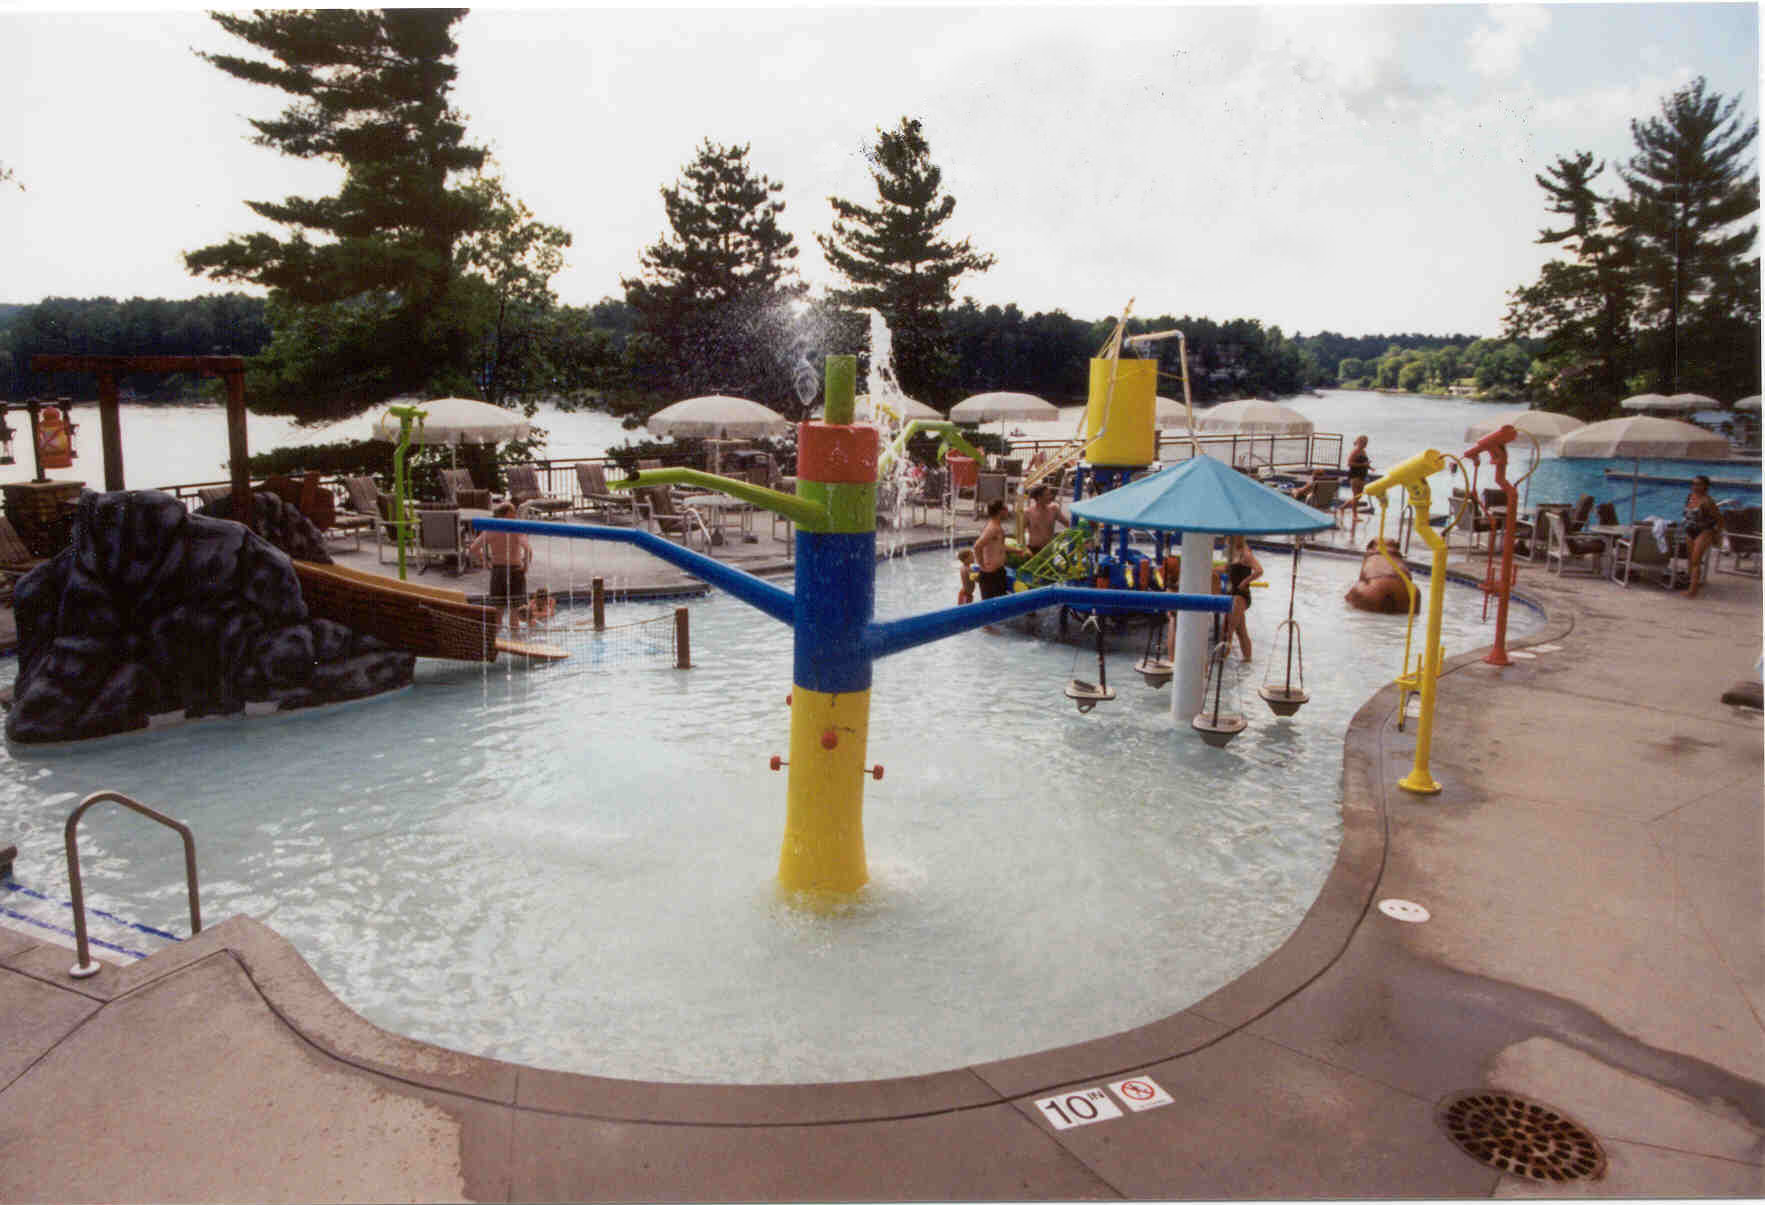 Outdoor kids play area at the Wilderness on the Lake in Wisconsin Dells, WI